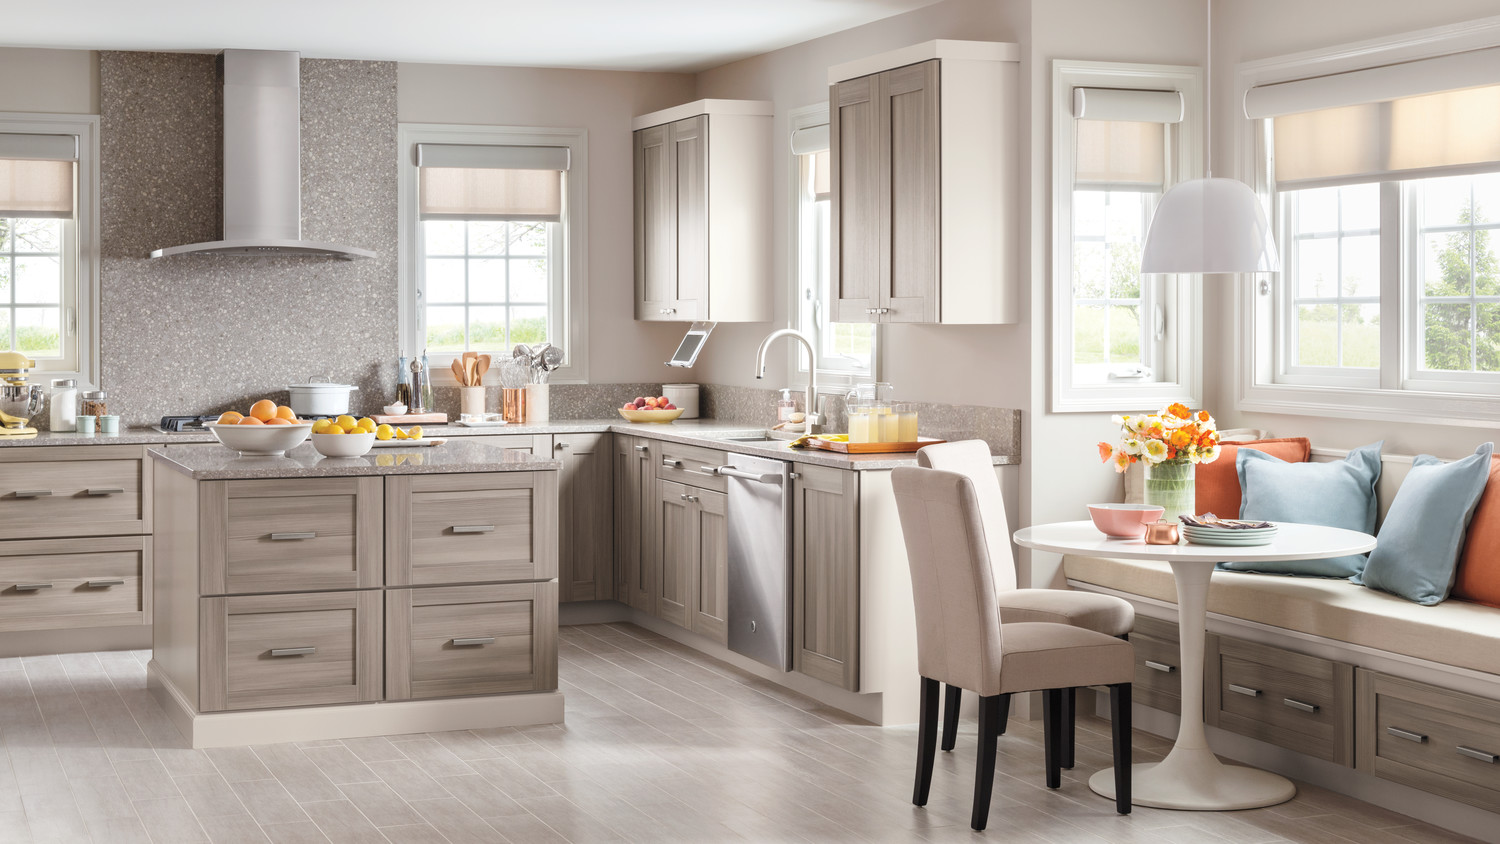 Superbe Video: Martha Stewart Introduces Textured PureStyle Kitchen Cabinets | Martha  Stewart